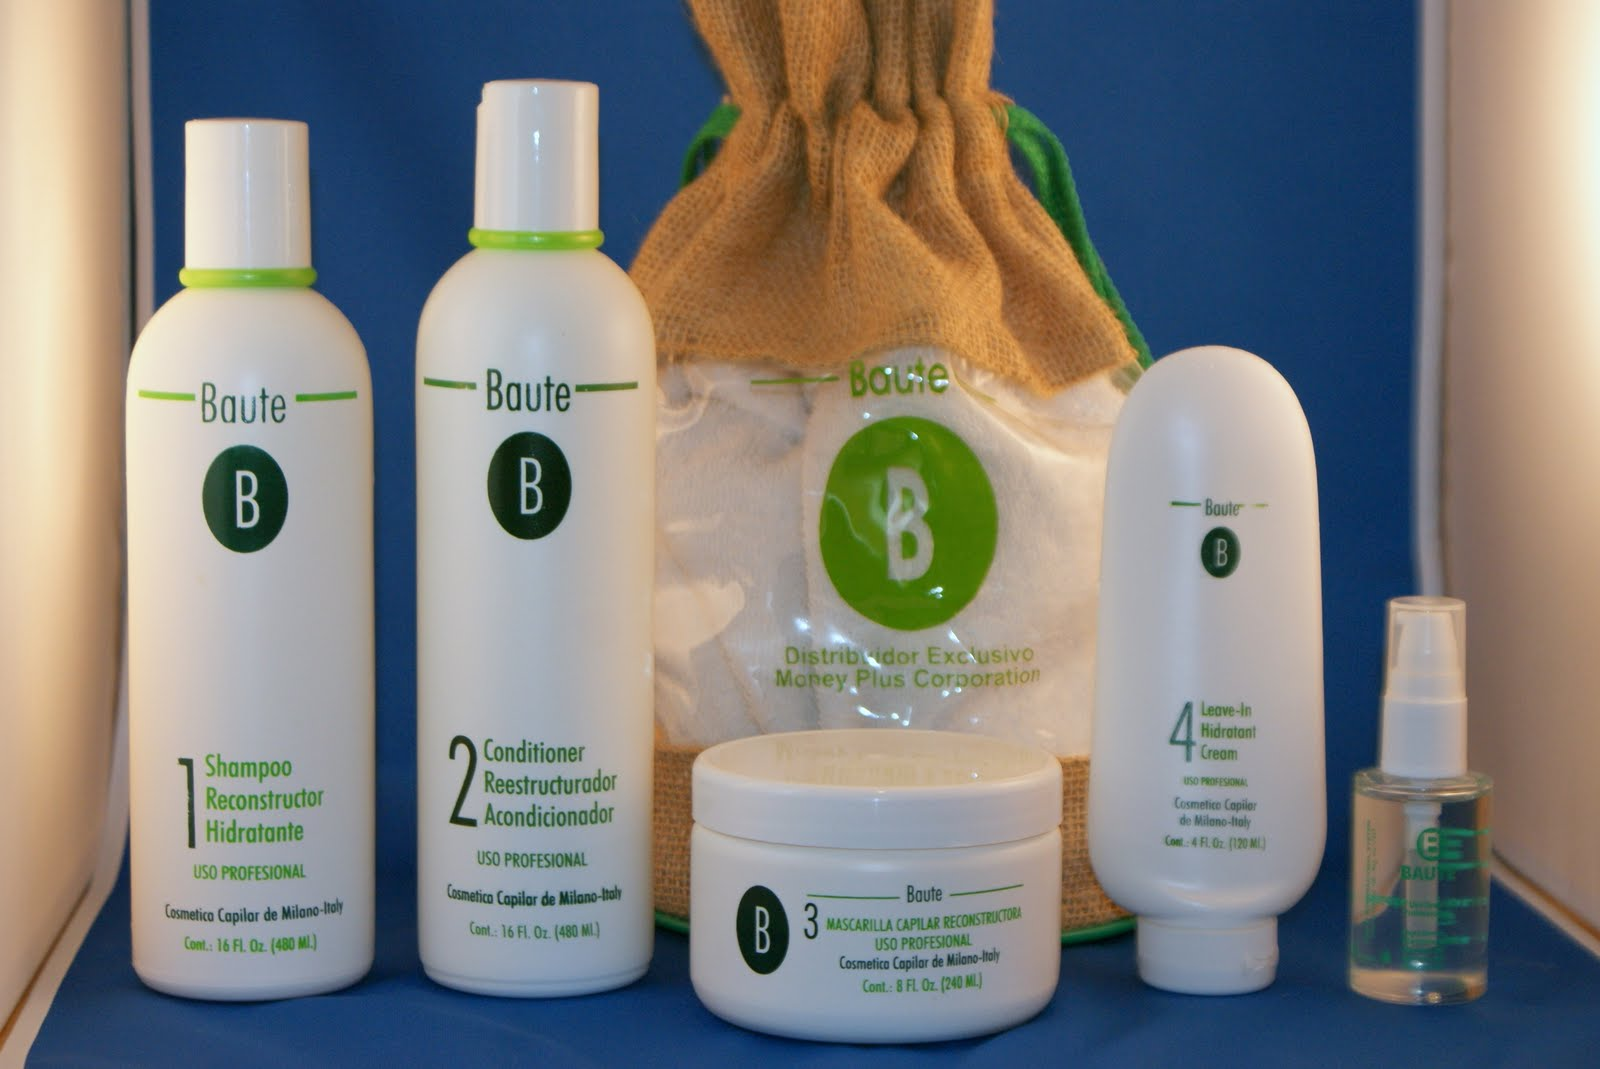 Mybautesofficicapelli: All Natural Hair Products From